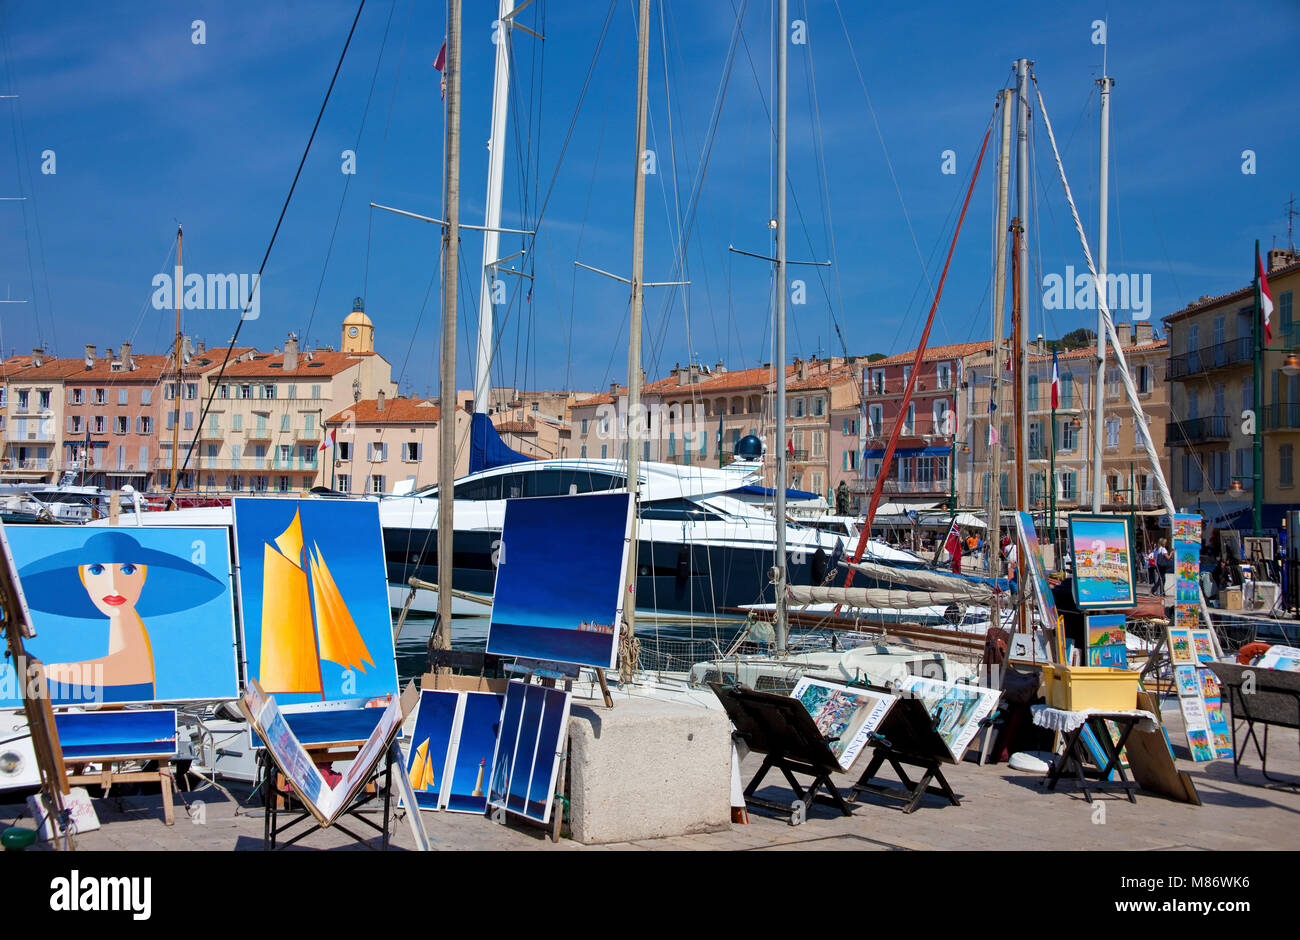 Paintings at strolling promenade at harbour of Saint-Tropez, french riviera, South France, Cote d'Azur, France, - Stock Image